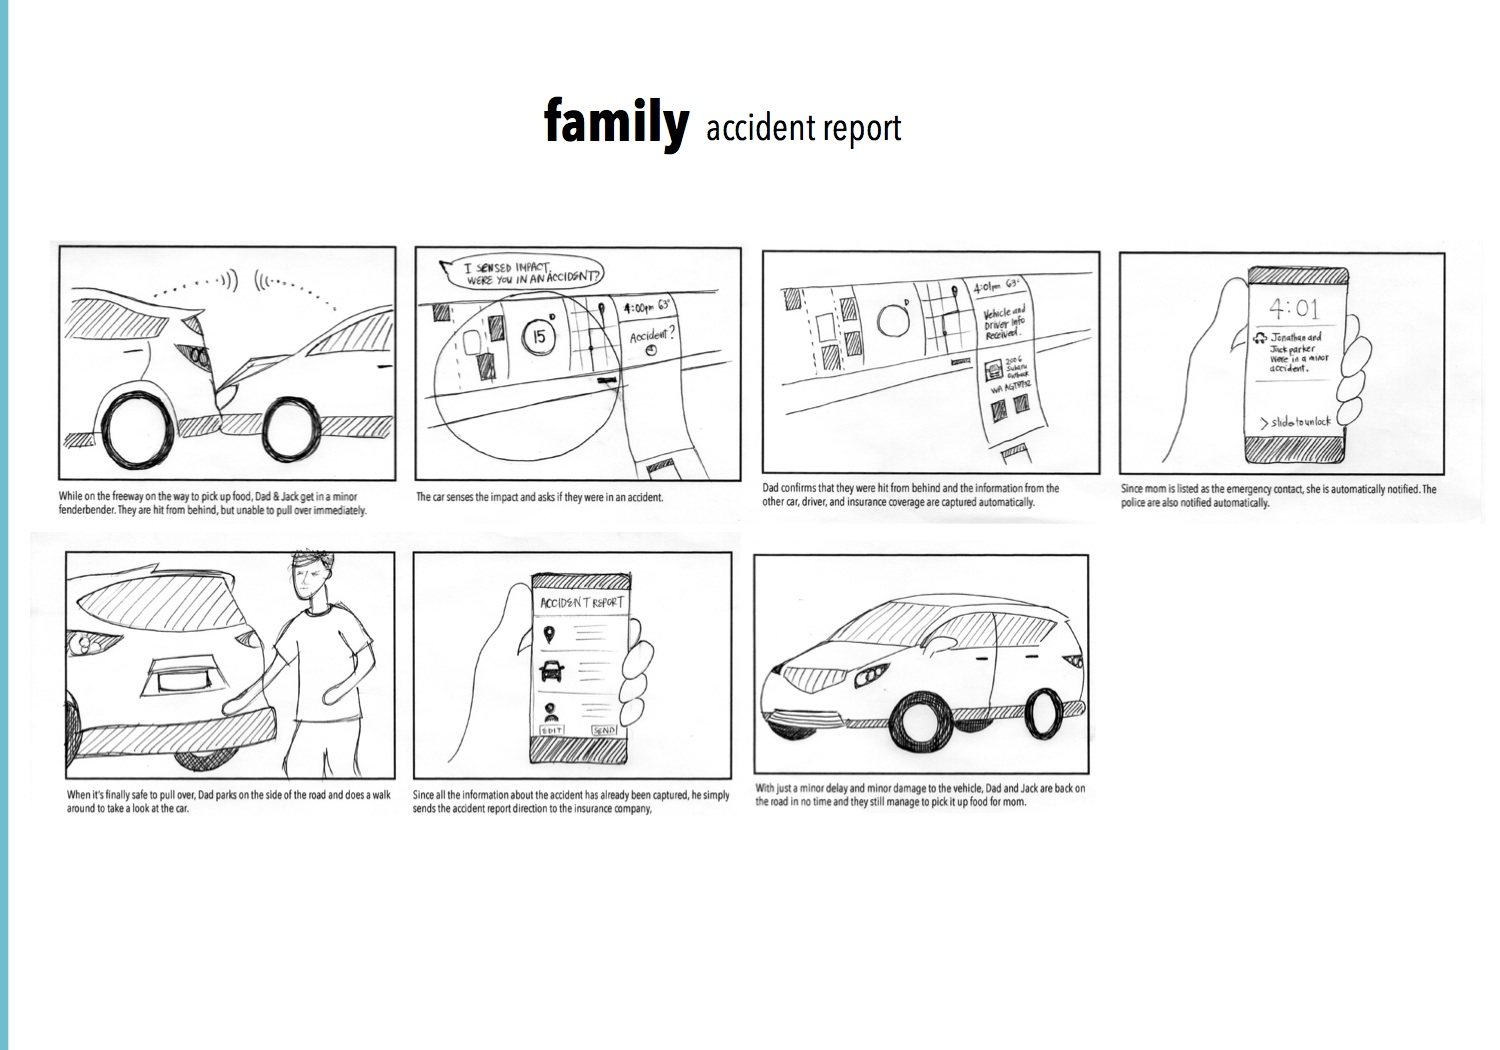 Storyboard for family car accident scenario